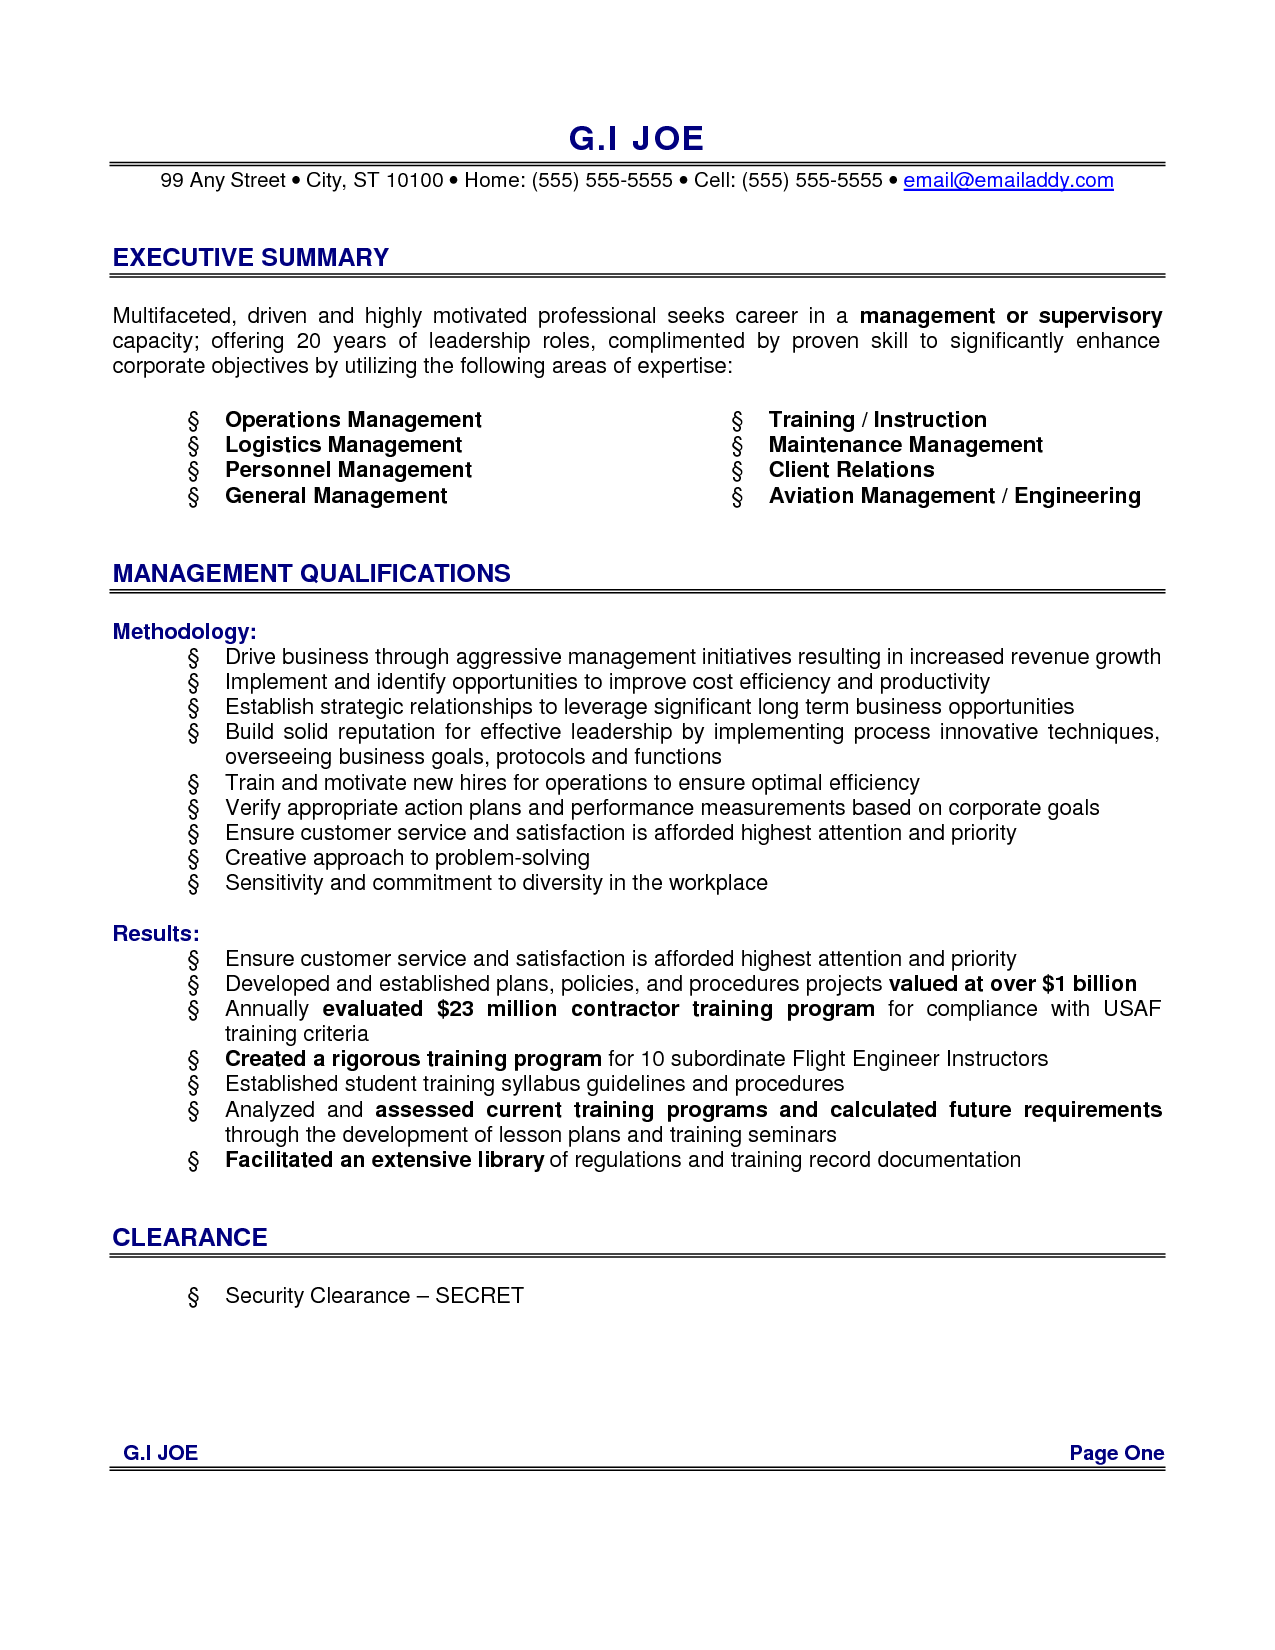 resumeexamples for executive summary with management